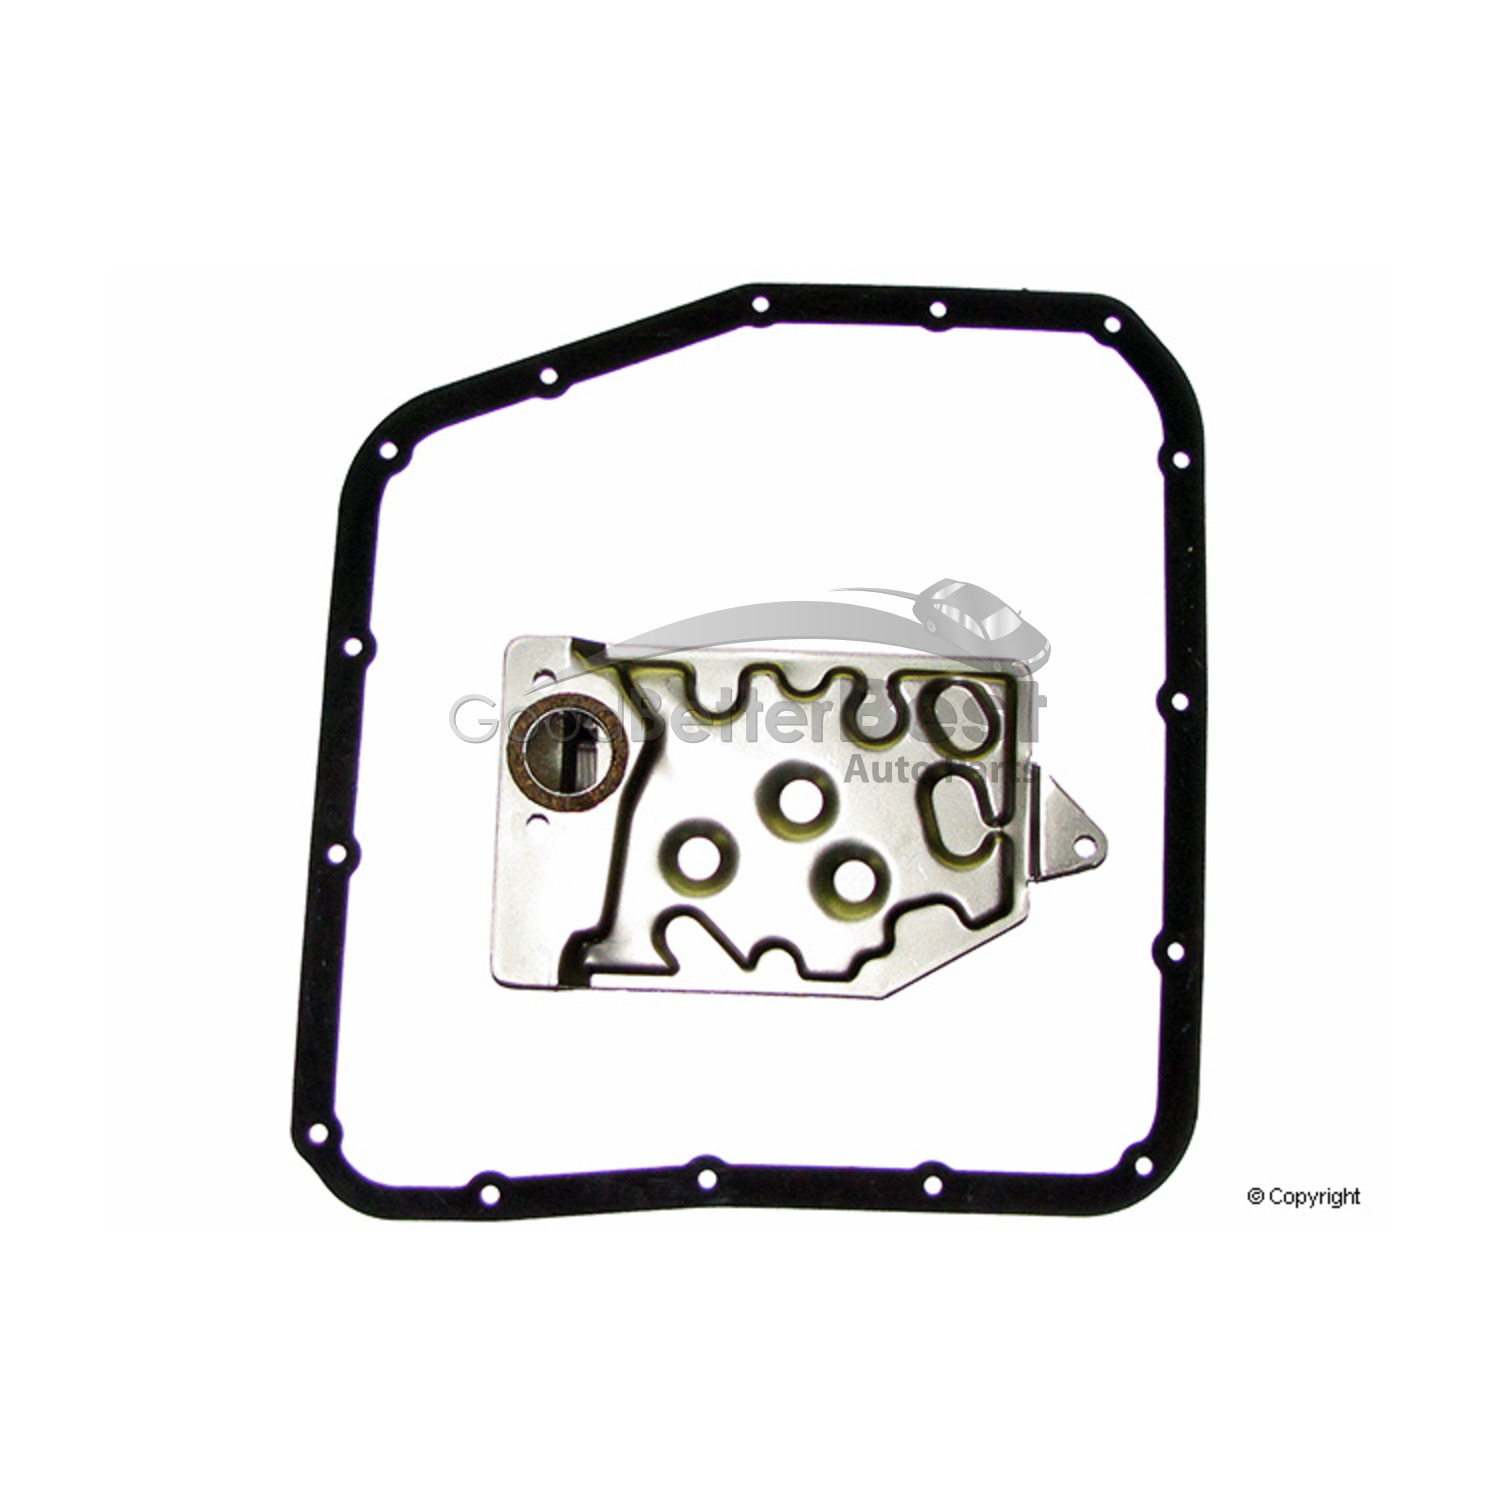 New Pro King Automatic Transmission Filter Kit Fk244 For